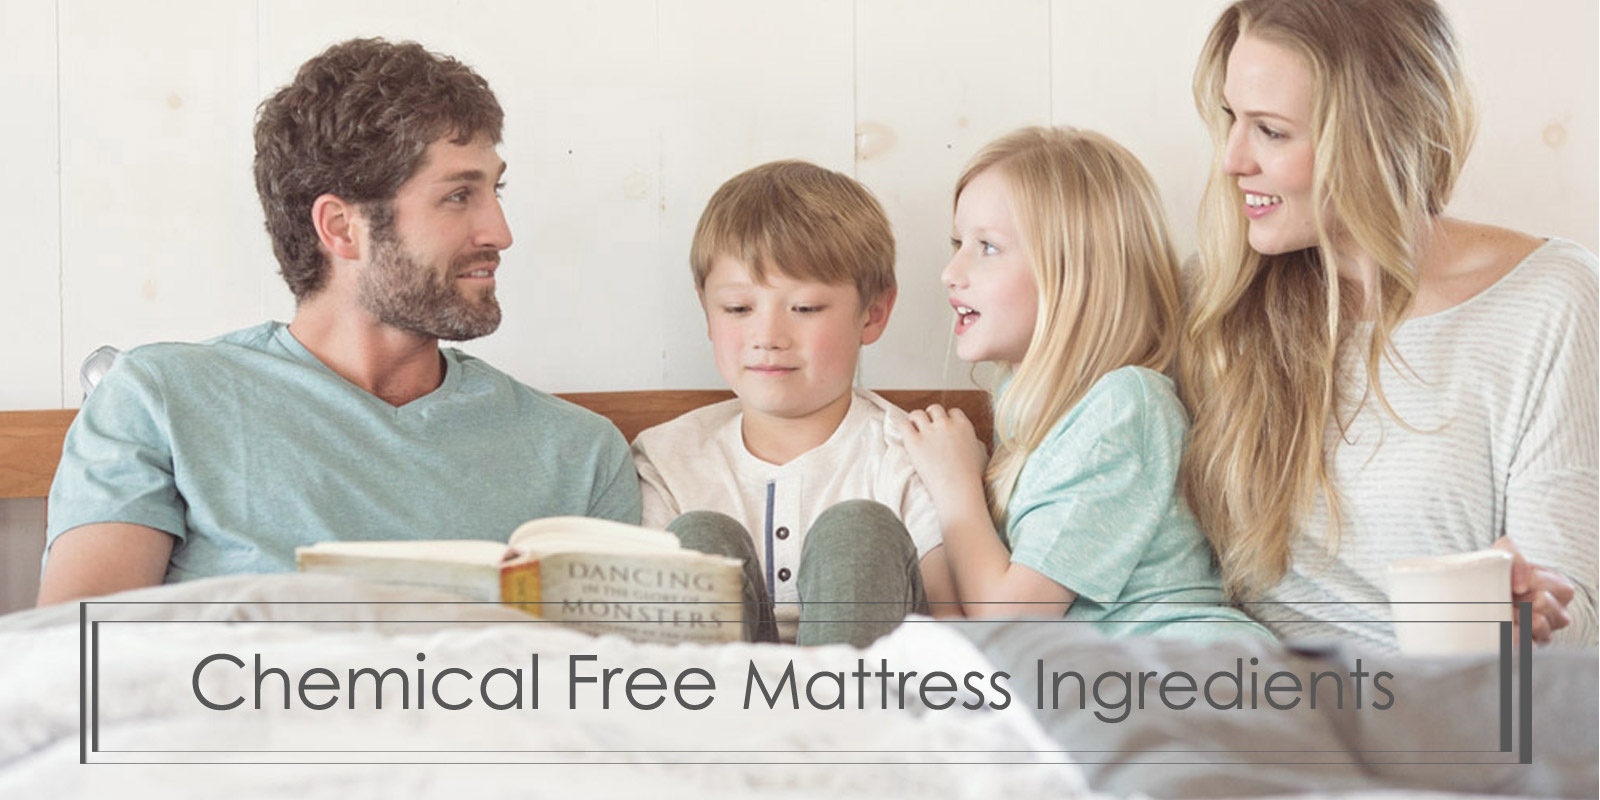 What are the ingredients of Chemical Free Mattresses